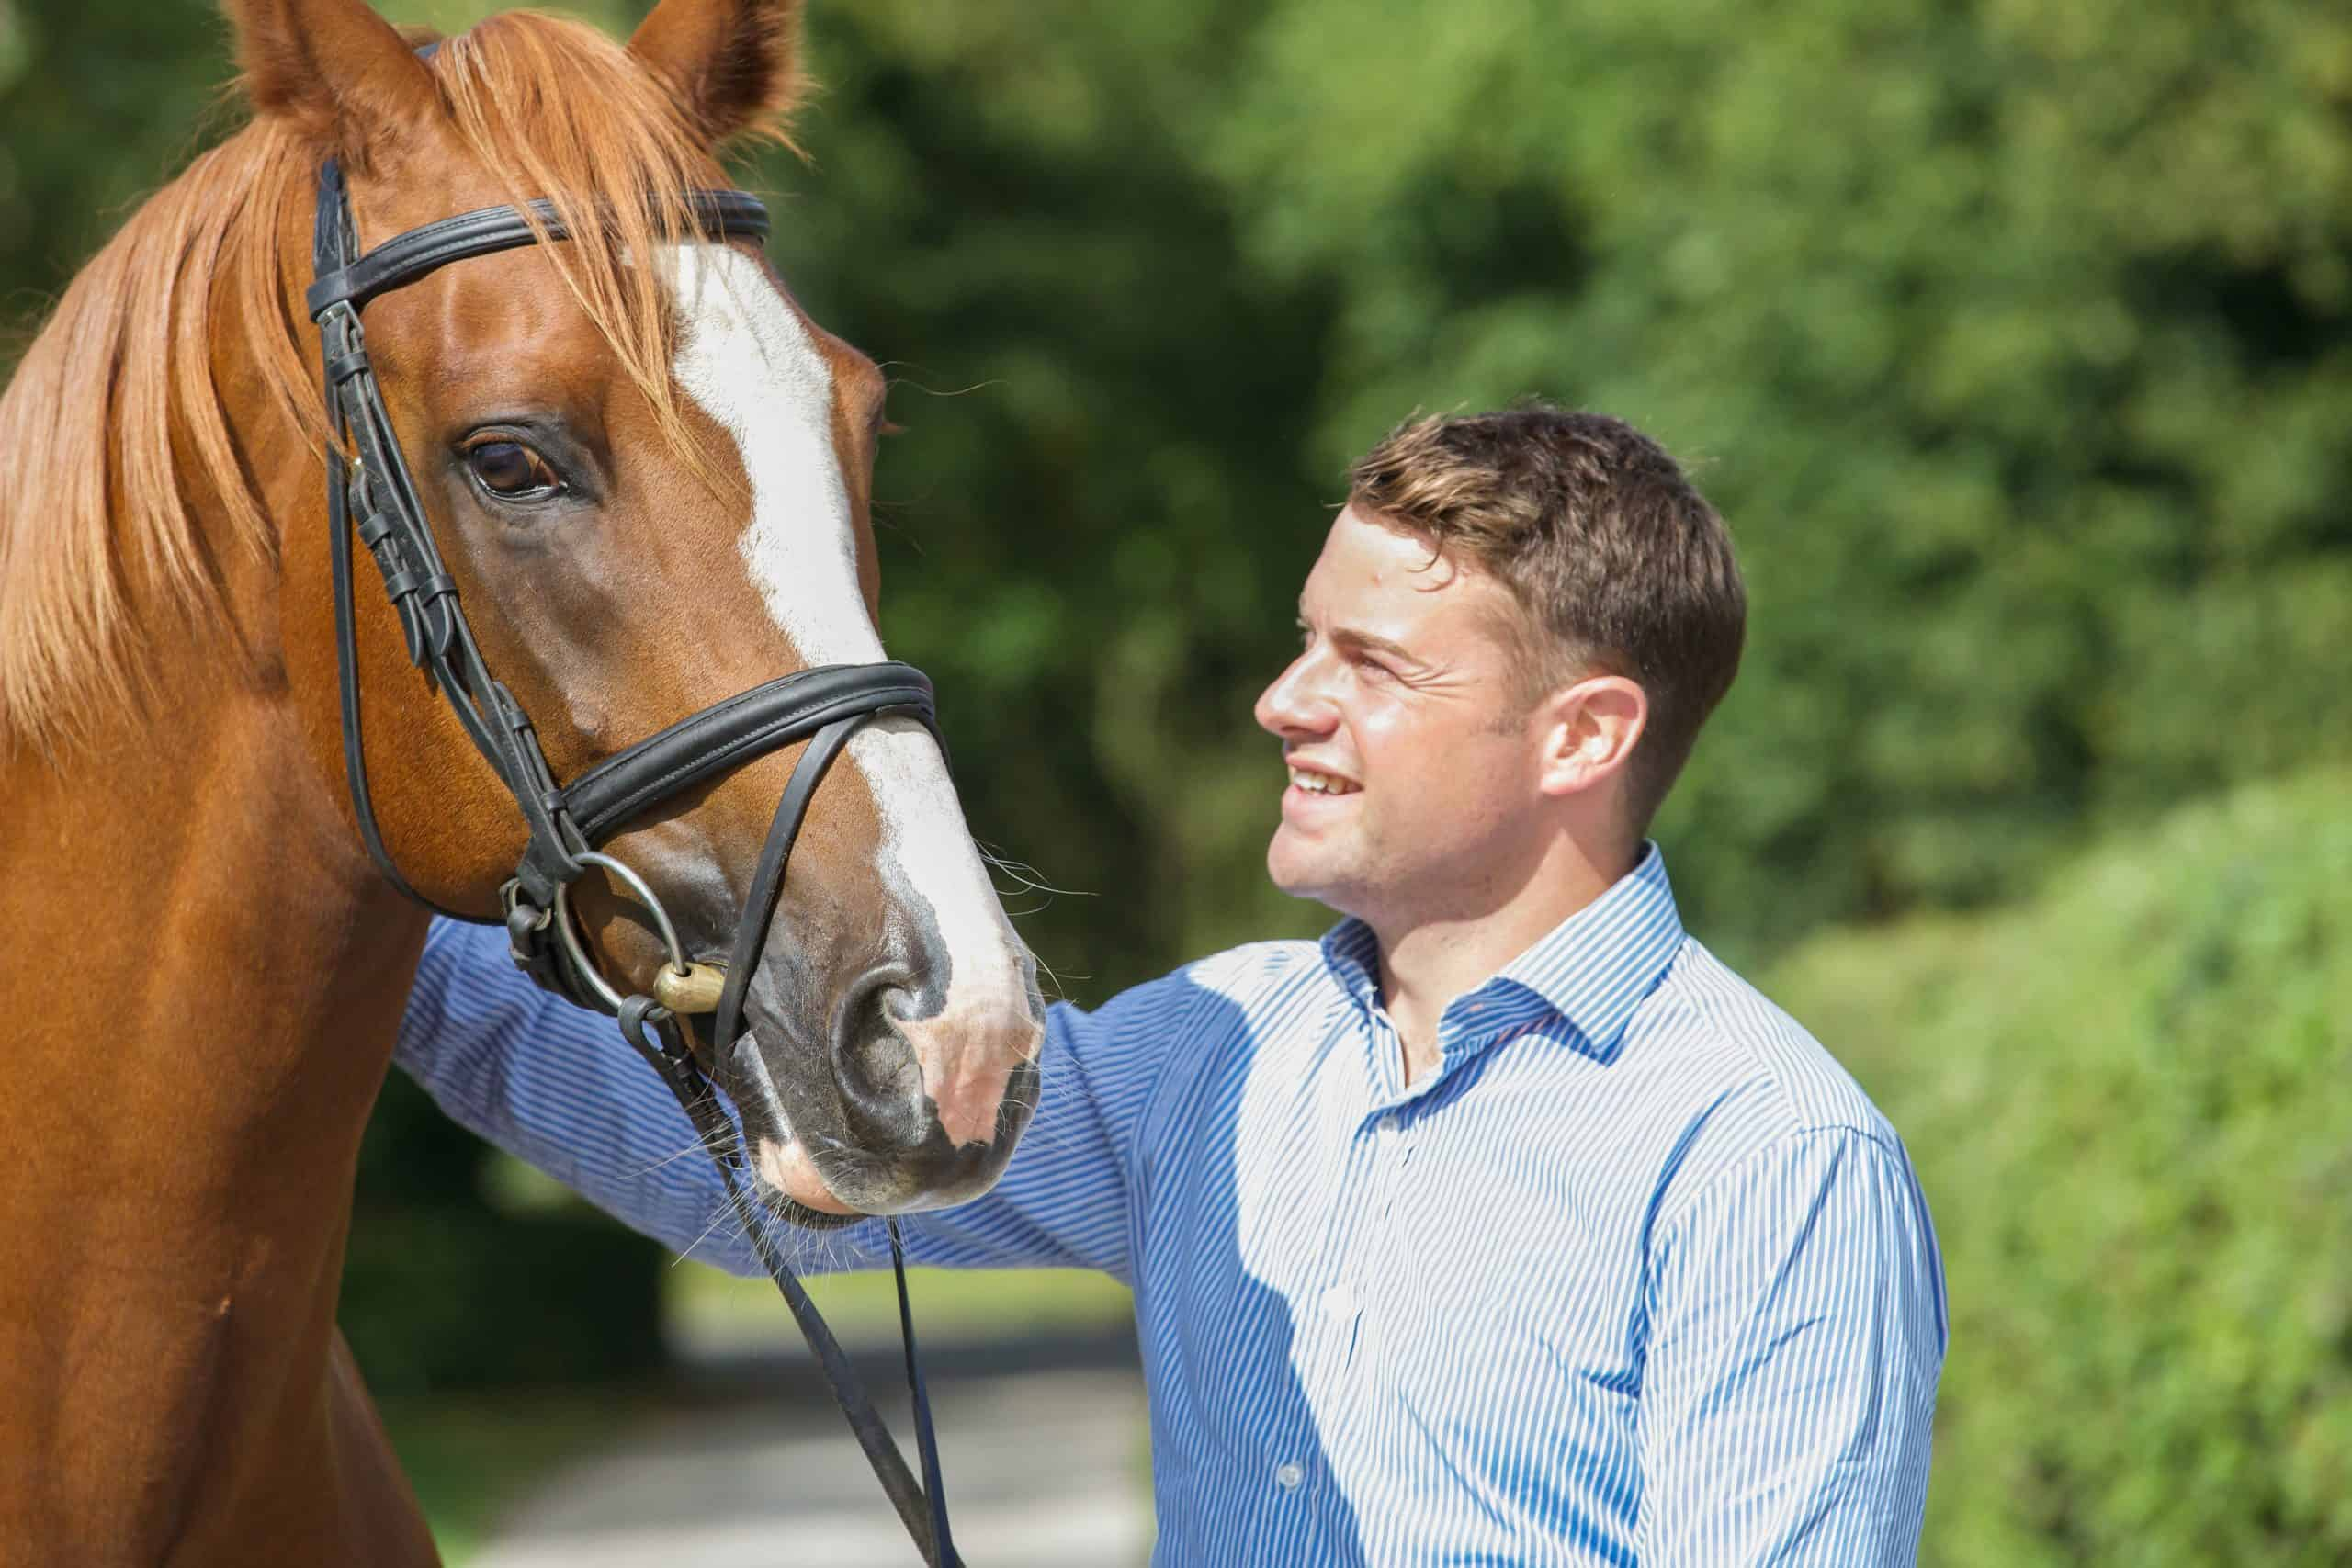 Horse owner tending to stallion relationship between horse and owner